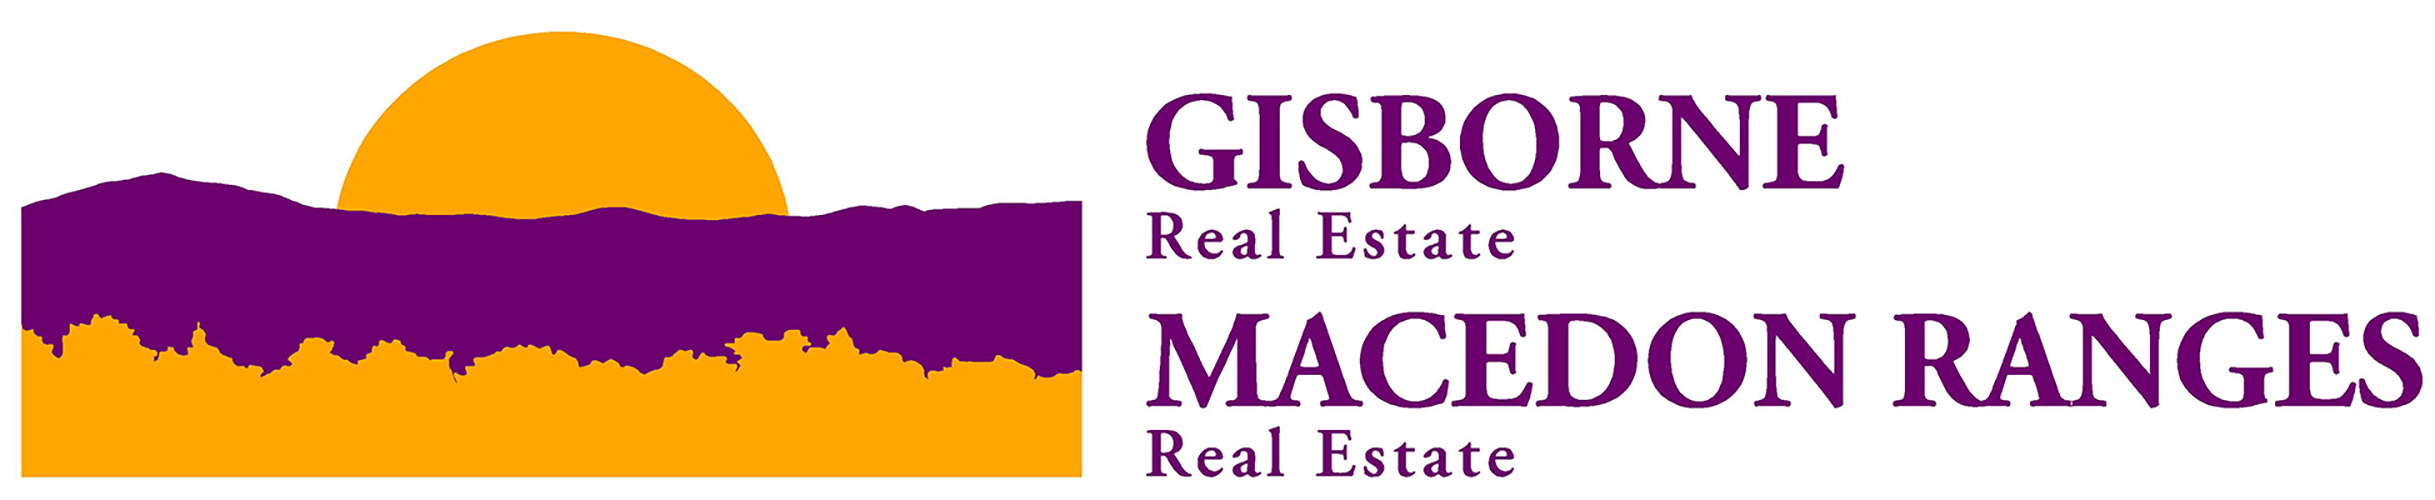 Gisborne Real Estate